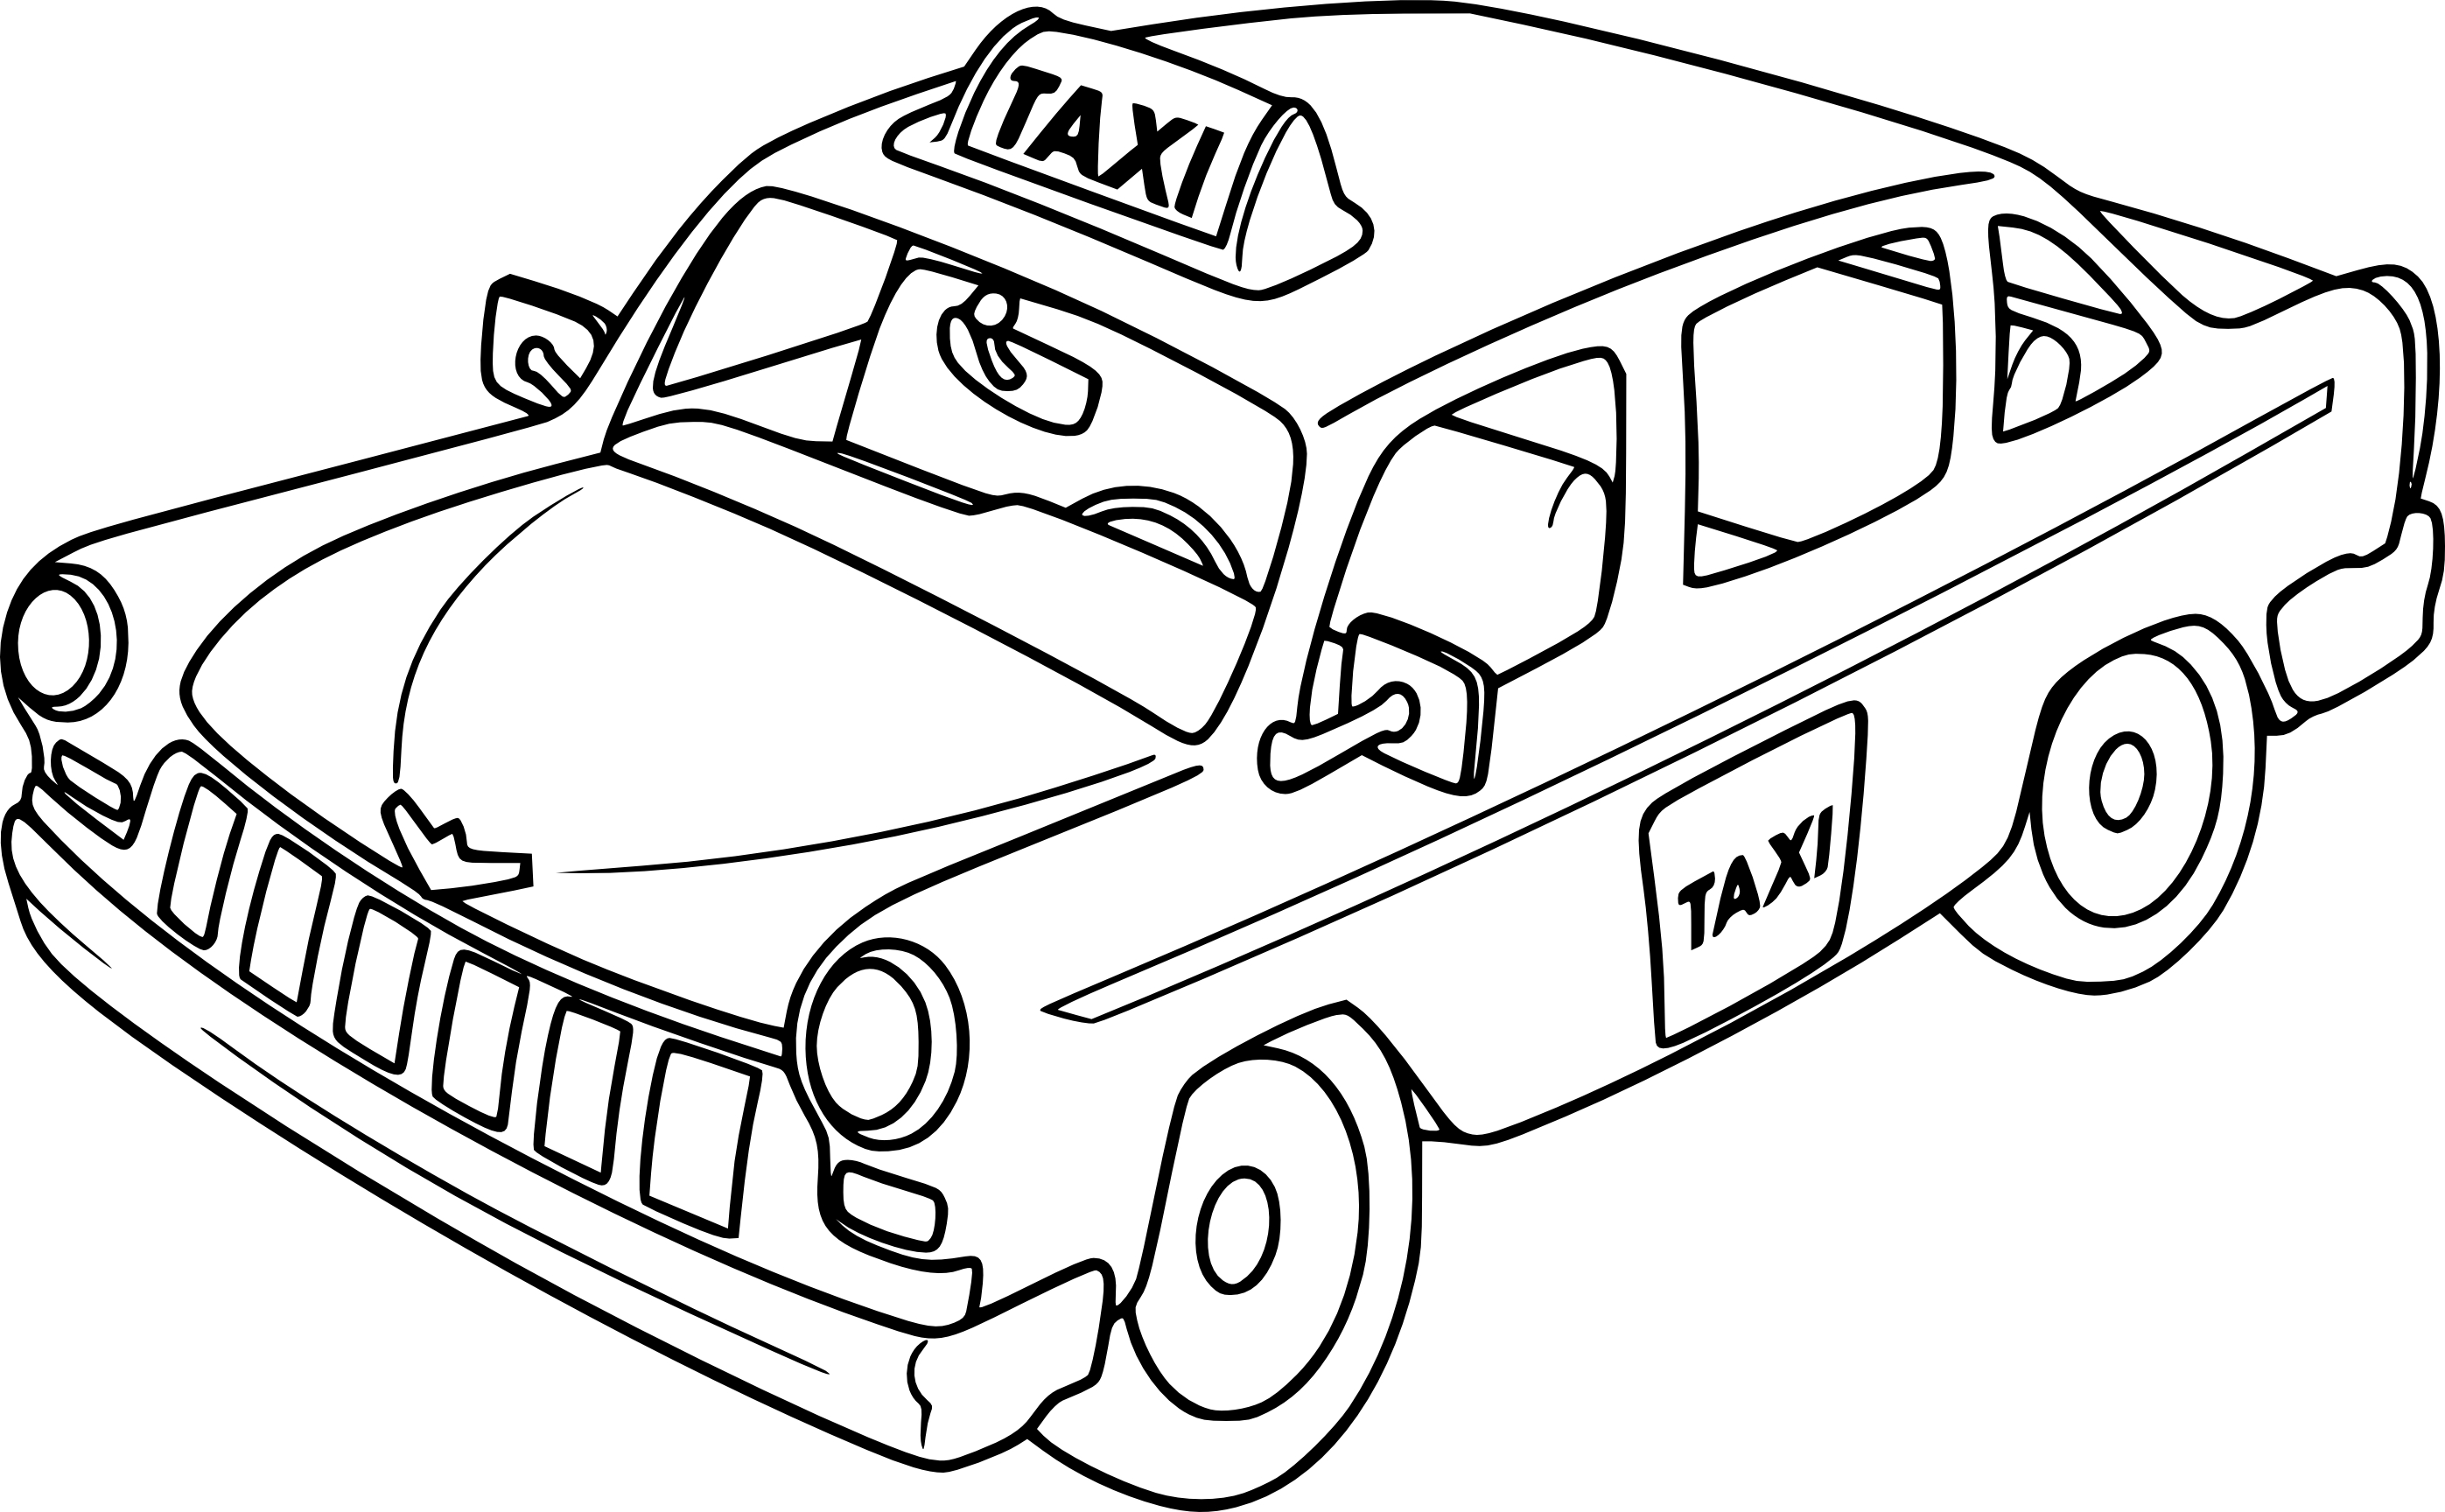 taxi clipart black and white 10 clipart station. Black Bedroom Furniture Sets. Home Design Ideas